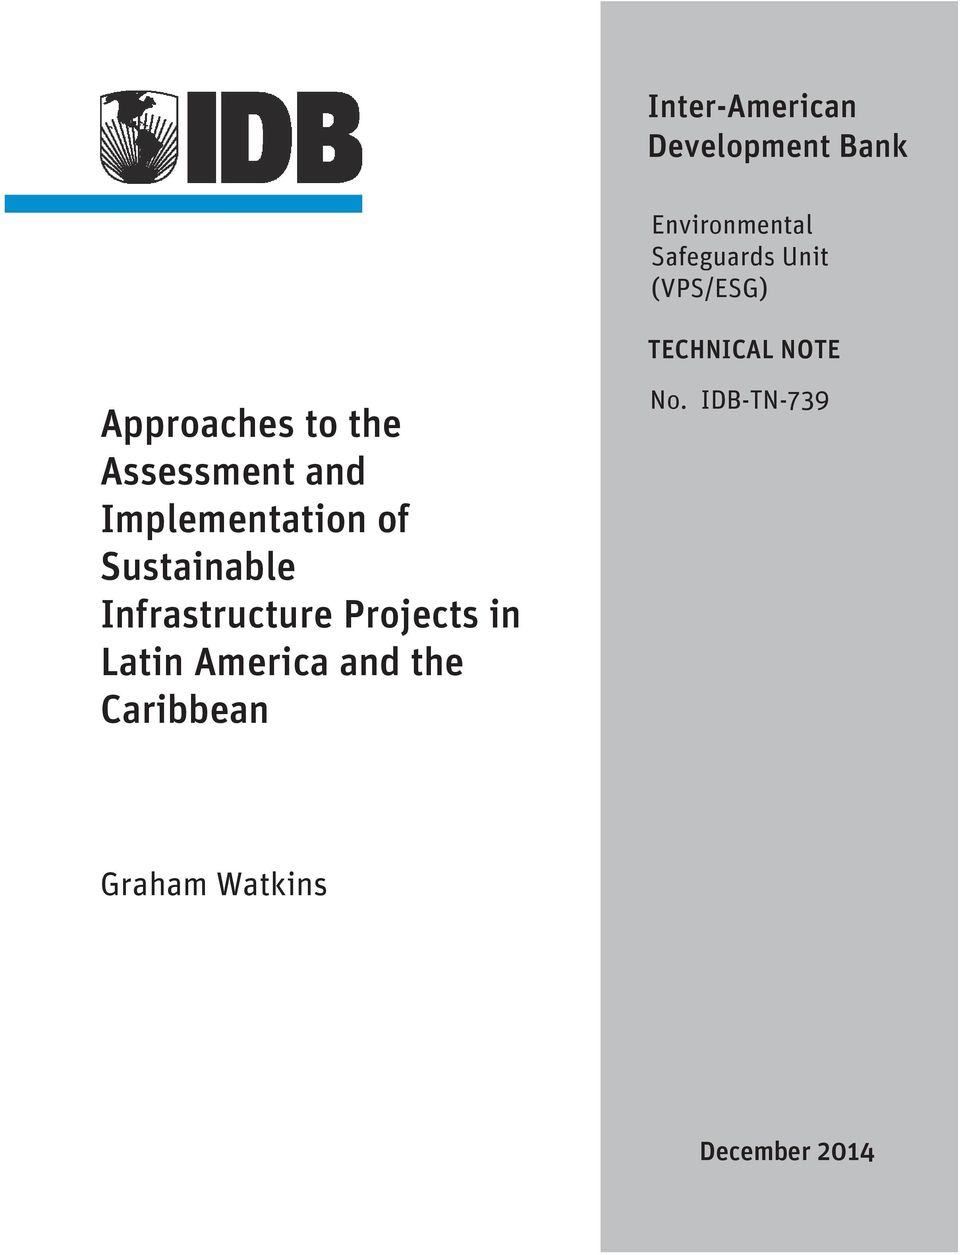 Implementation of Sustainable Infrastructure Projects in Latin